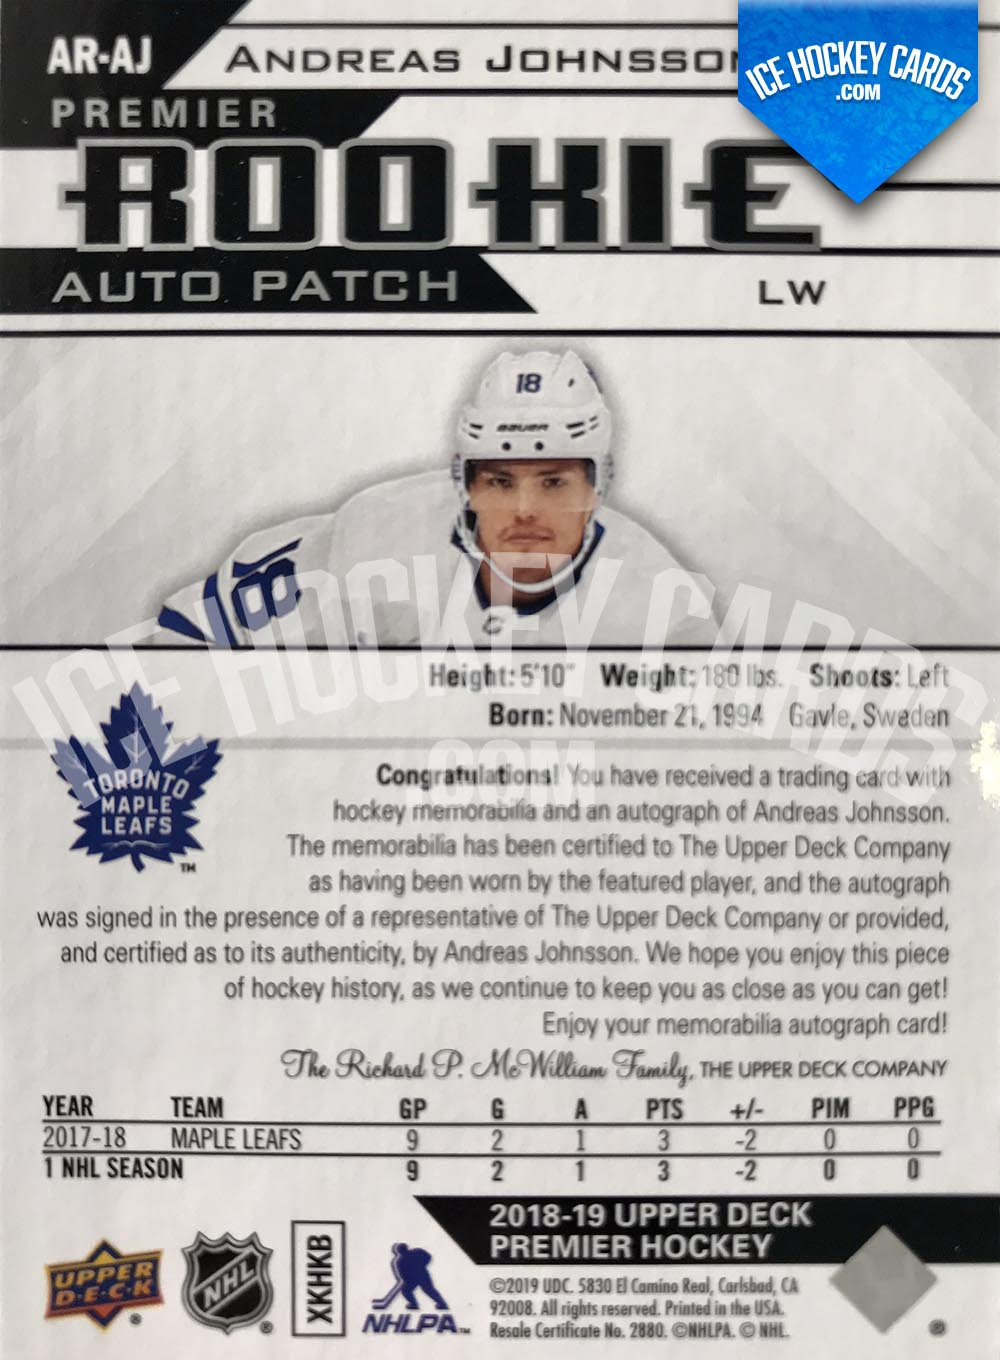 Upper Deck - Premier 2018-19 - Andreas Johnsson Premier Rookie Auto Patch Card back